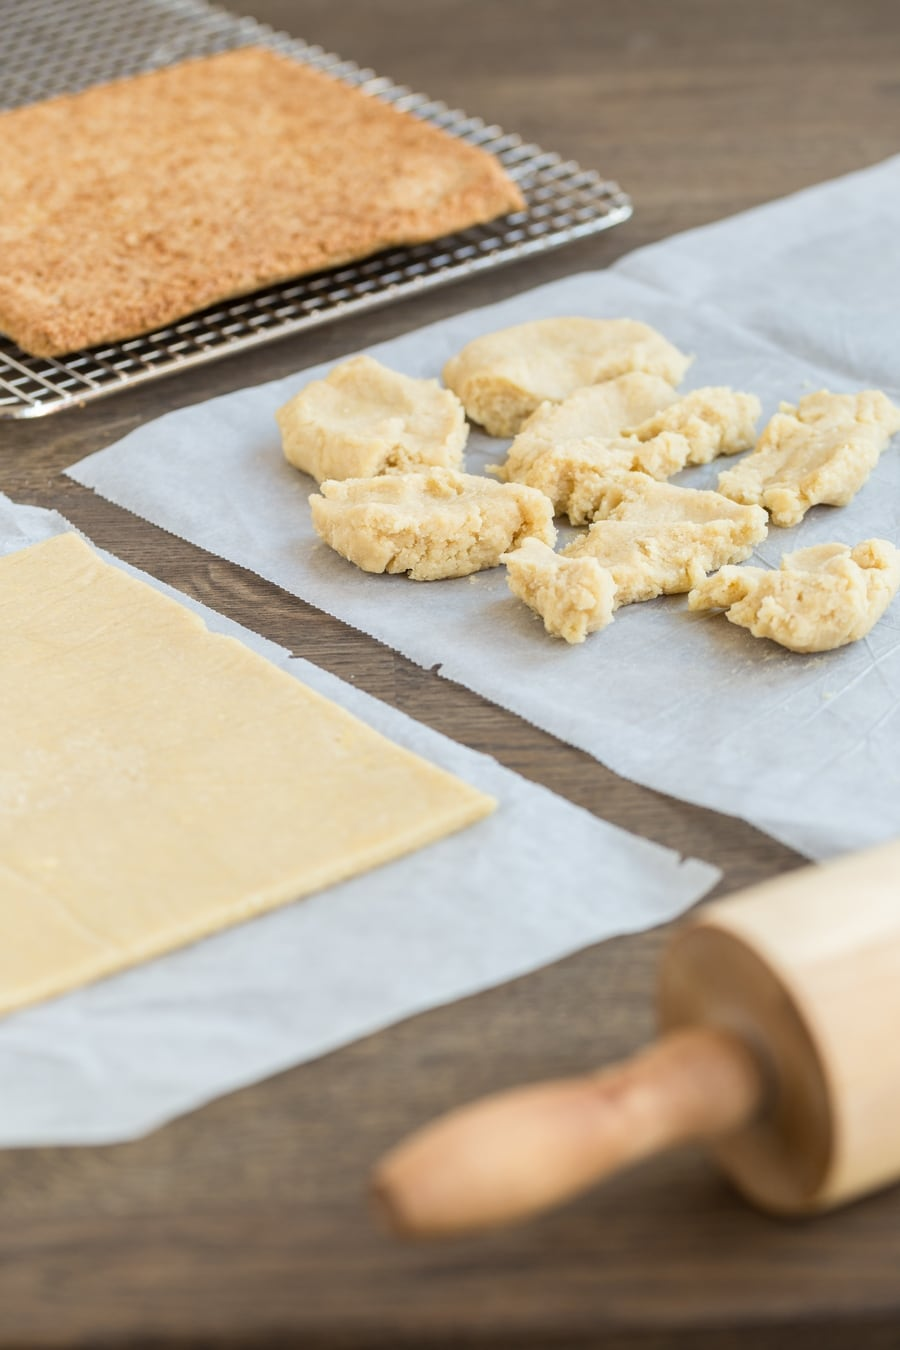 Crumbled pastry dough about to be rolled out between parchment paper sheets.